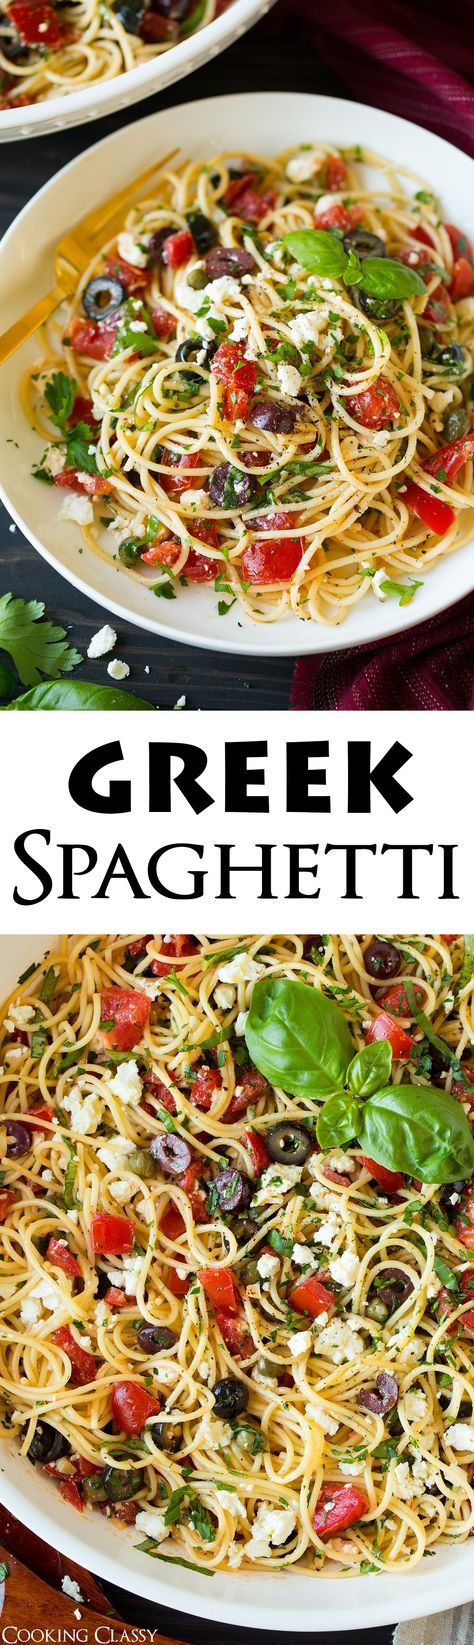 Greek Spaghetti This only takes about 20 minutes to prepare. #weeknightdinners